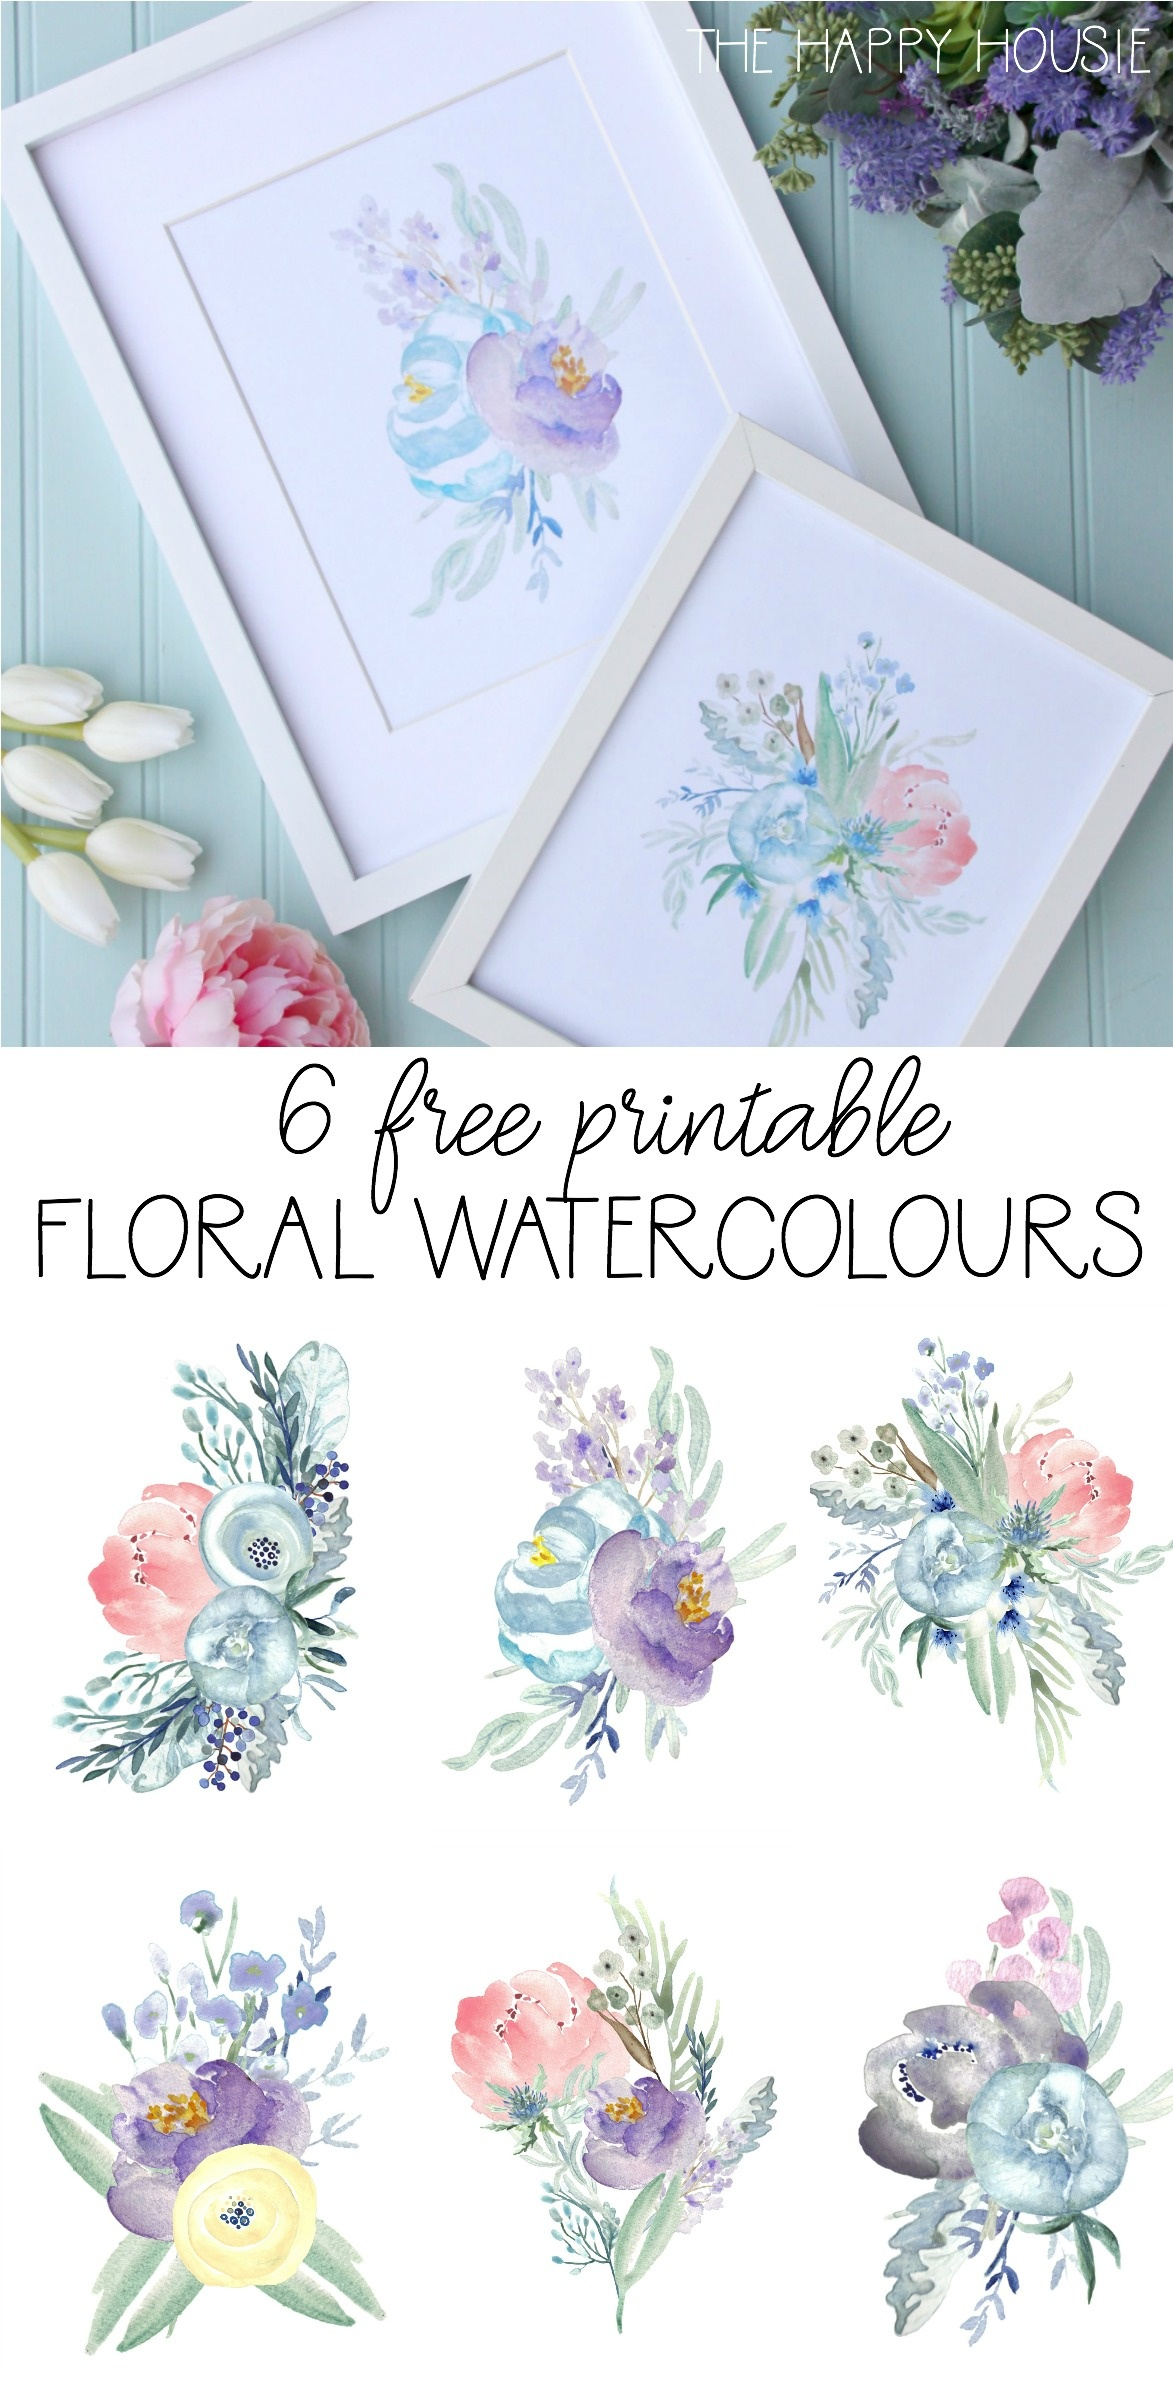 6 Free Printable Floral Watercolour Designs | The Happy Housie - Free Watercolor Printables